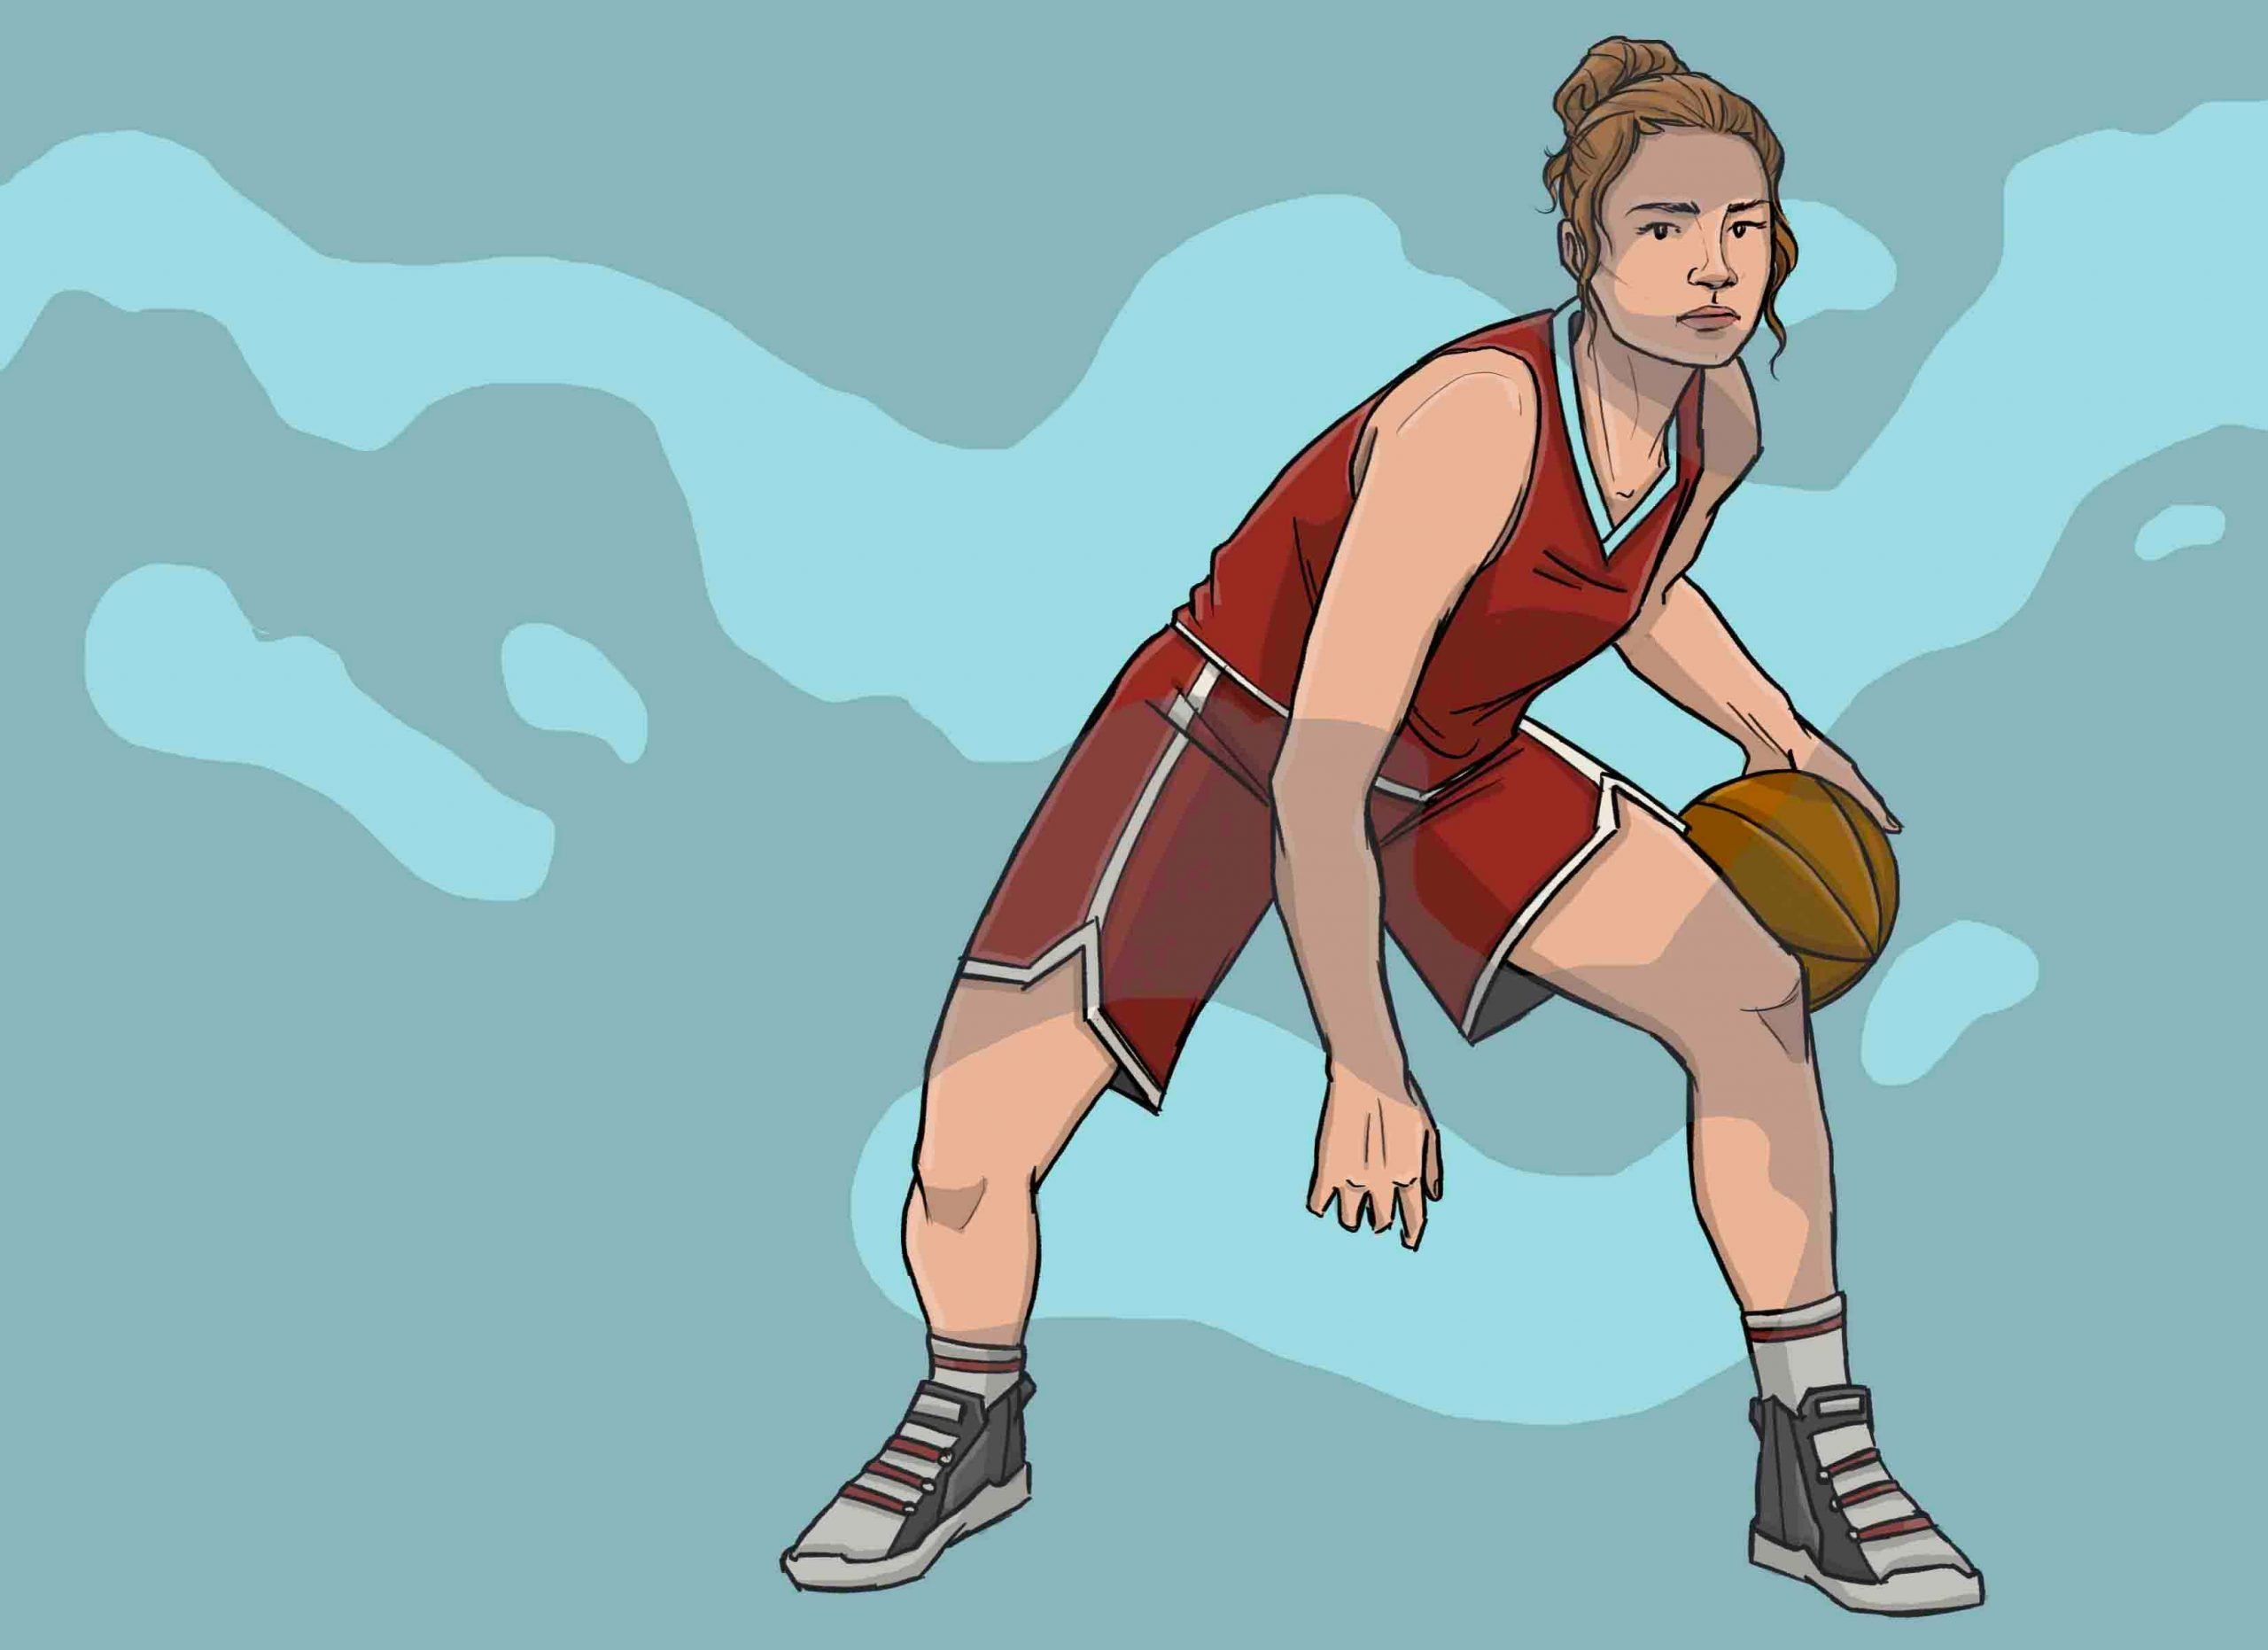 this is a drawing of mikaeka brewer playing basketball